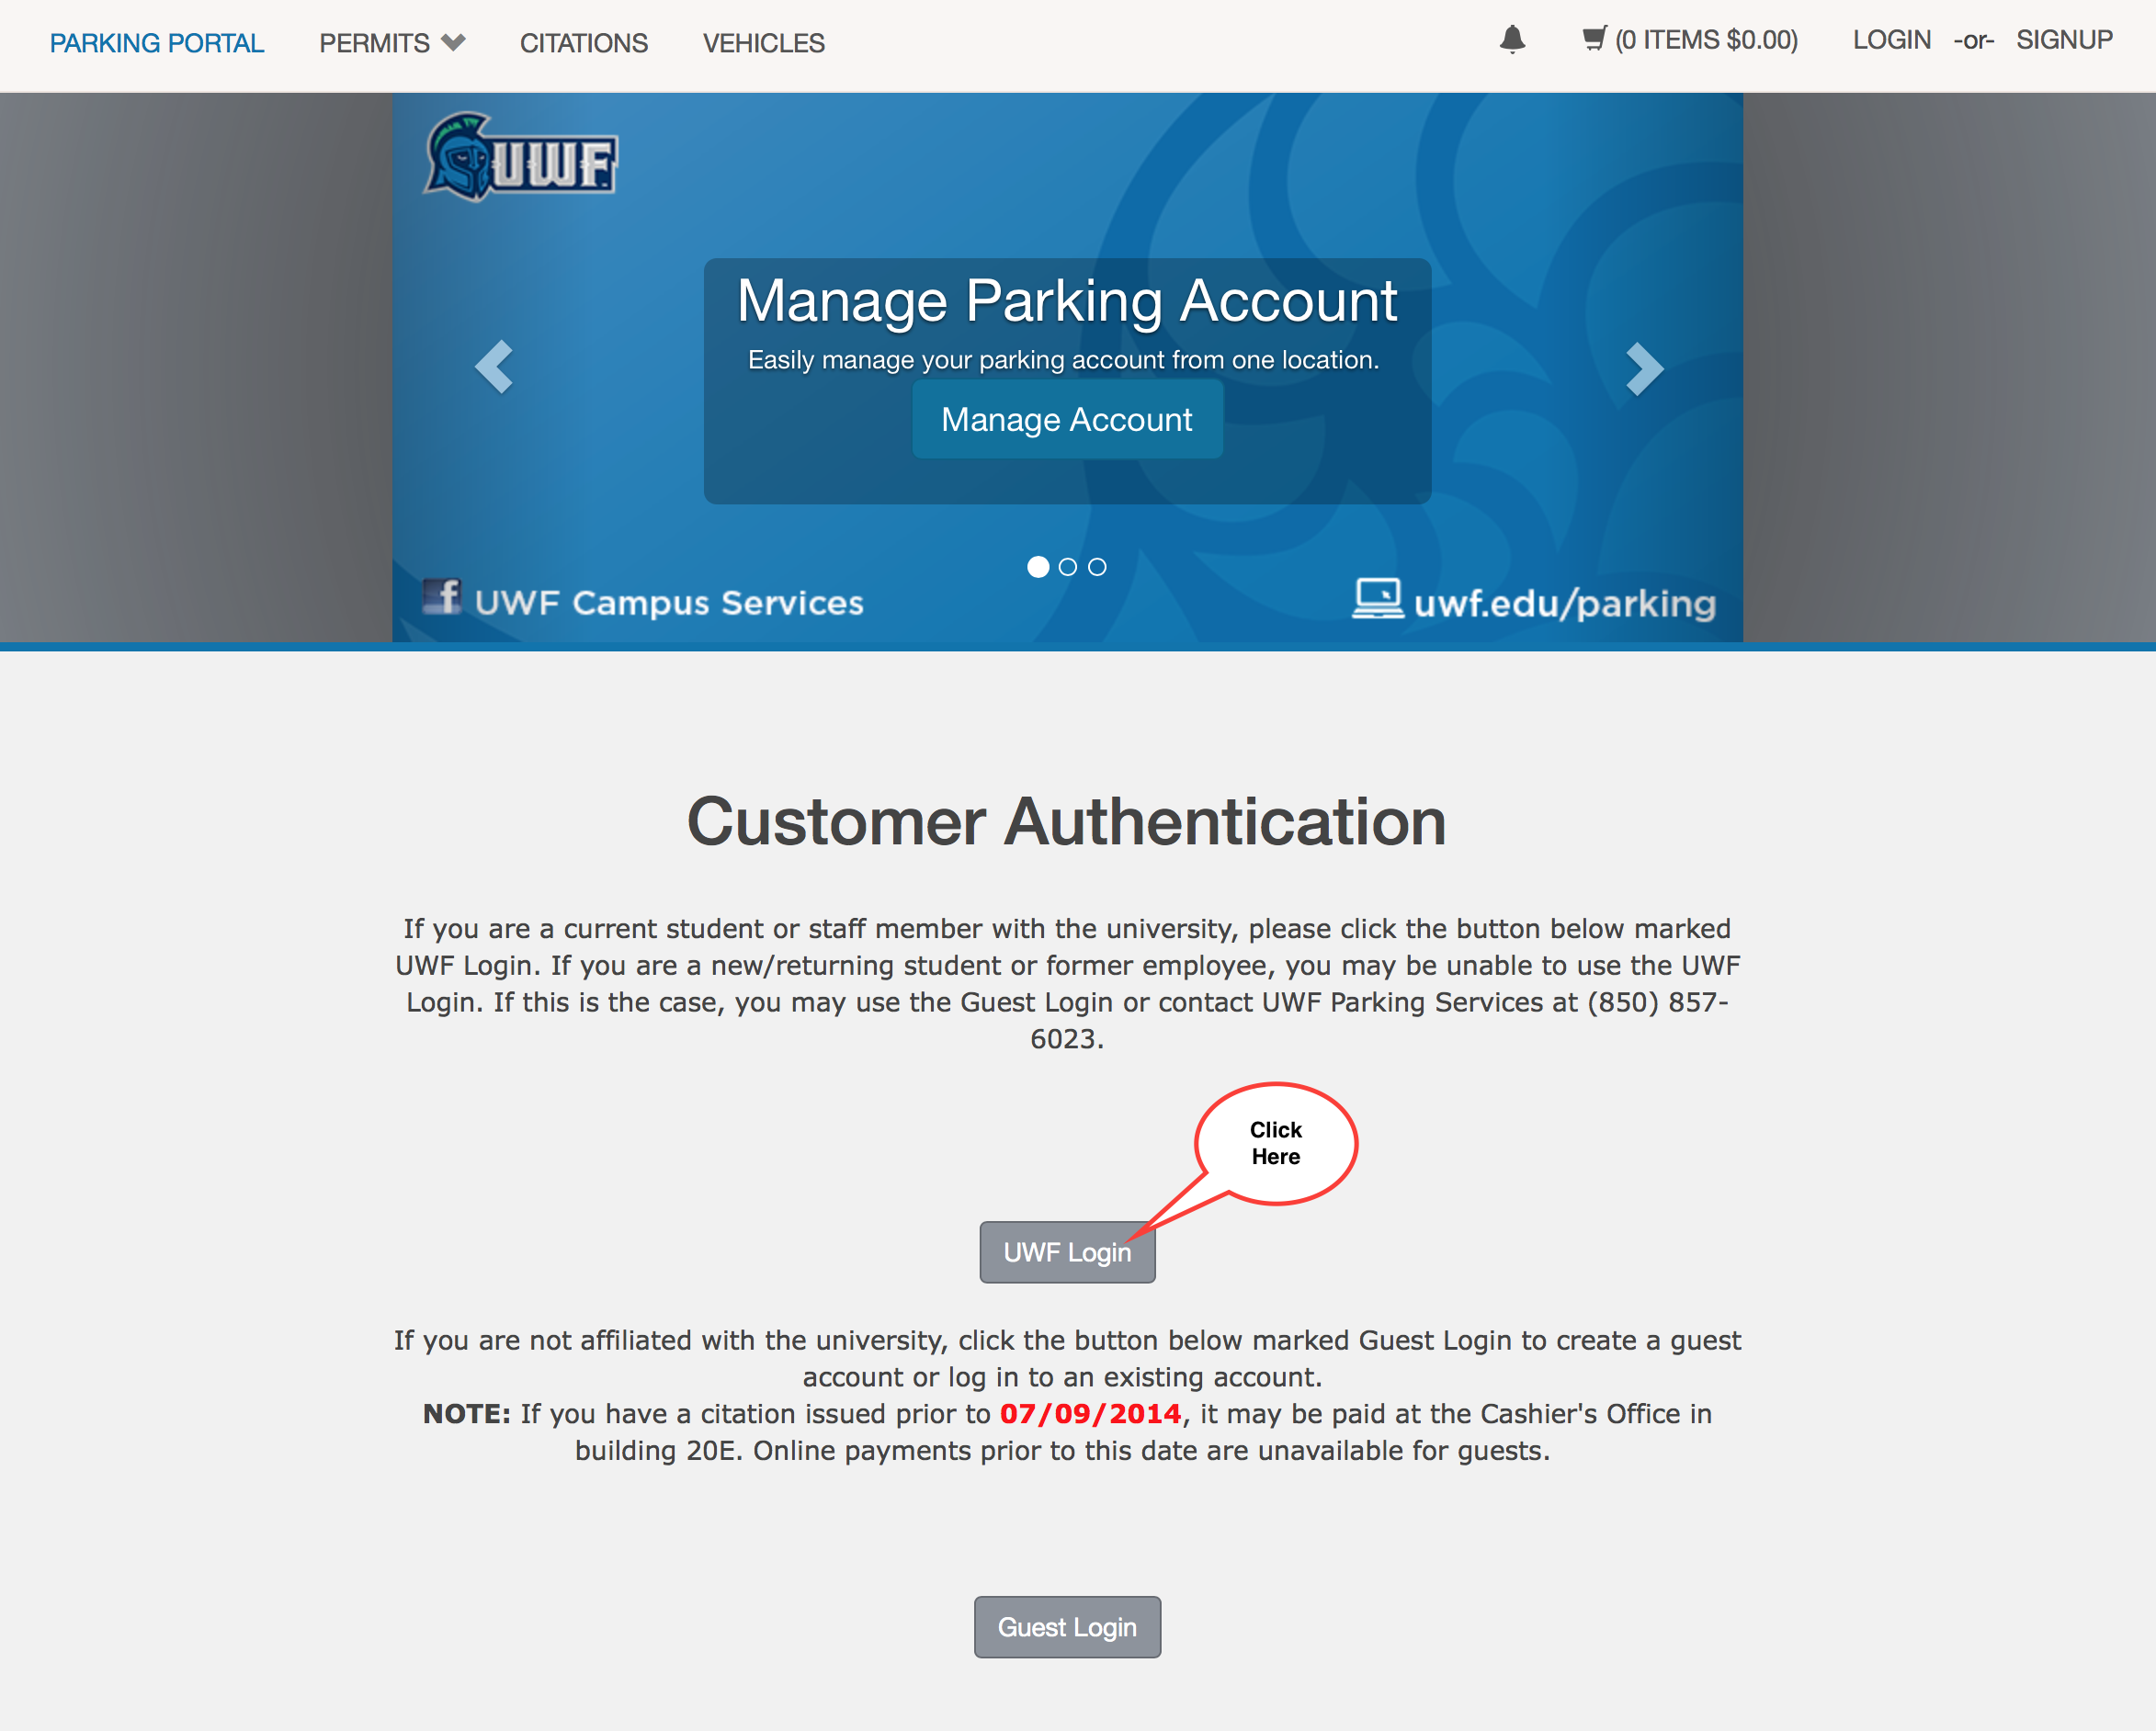 UWF Login button